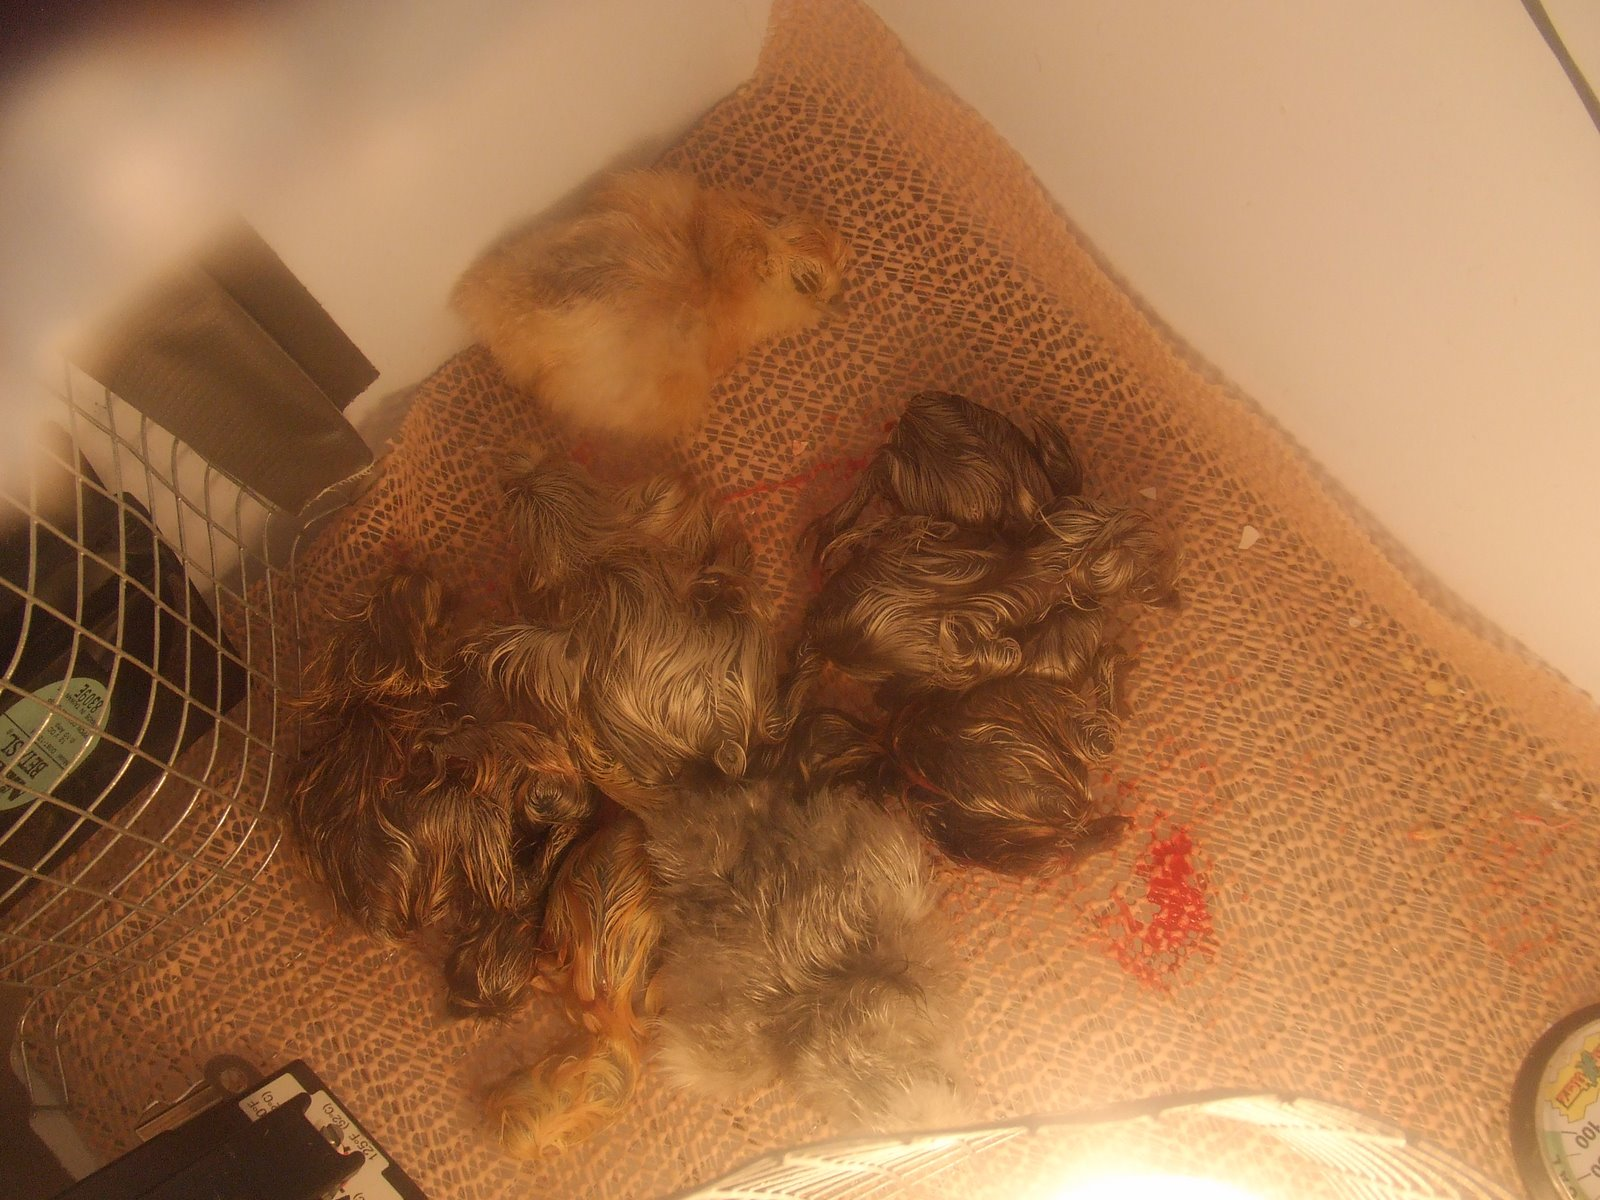 Chicken webcam photo 3